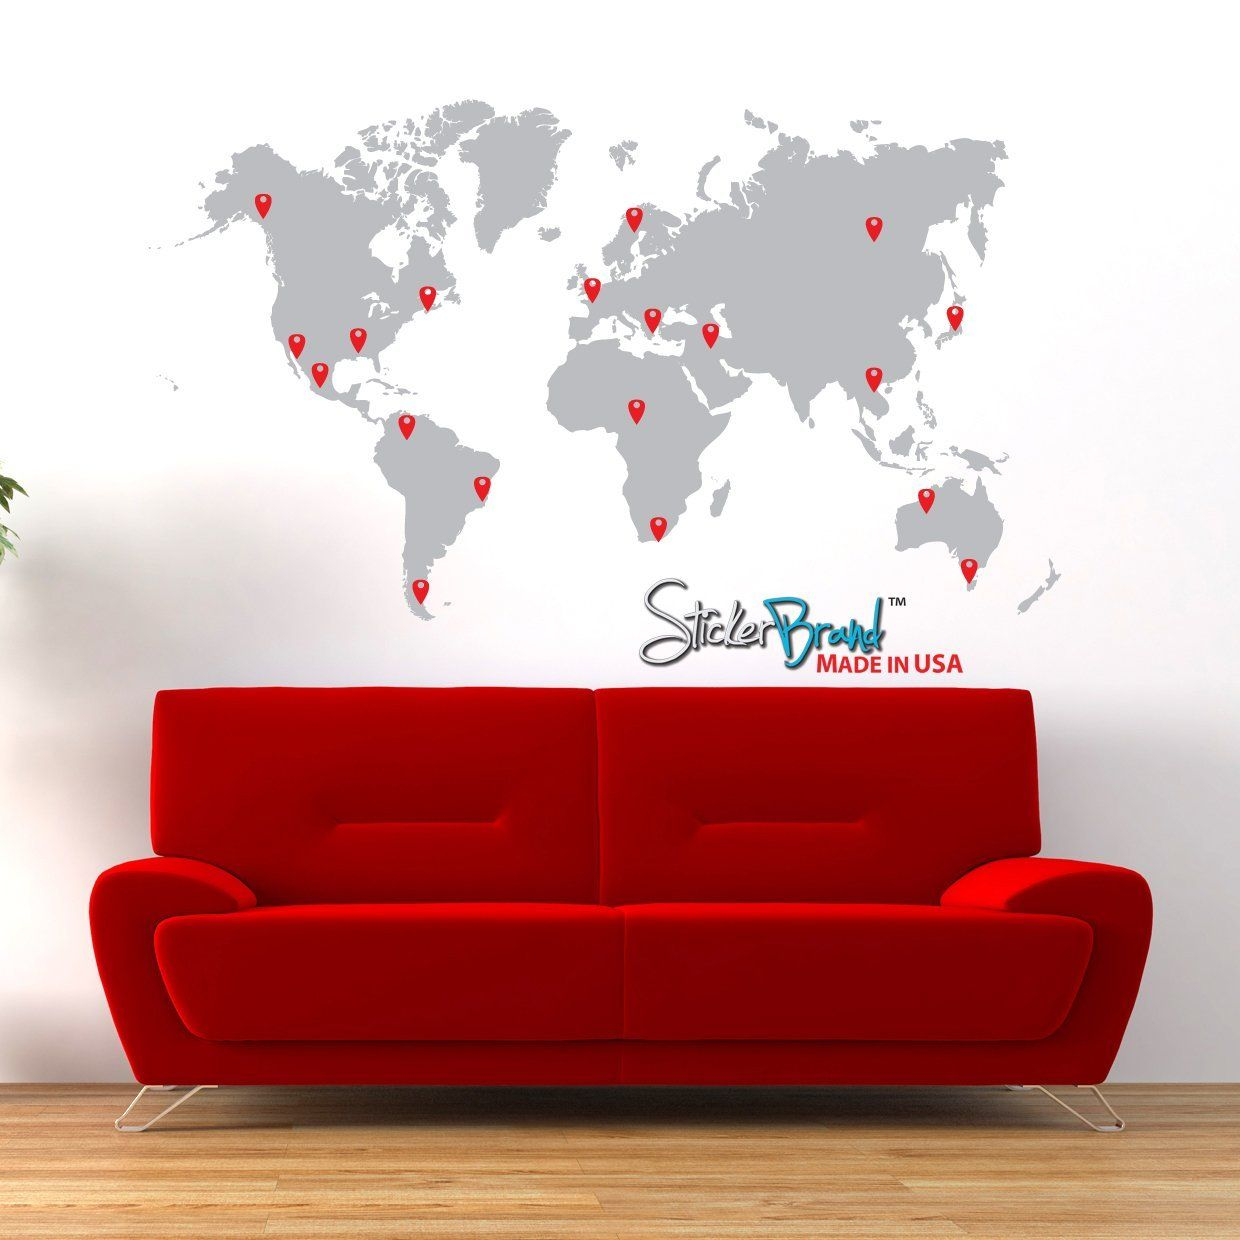 Amazon stickerbrand vinyl wall art world map of earth with pin stickerbrand vinyl wall art world map w pins wall decal sticker grey map w red black white grey pins x easy to apply removable gumiabroncs Image collections